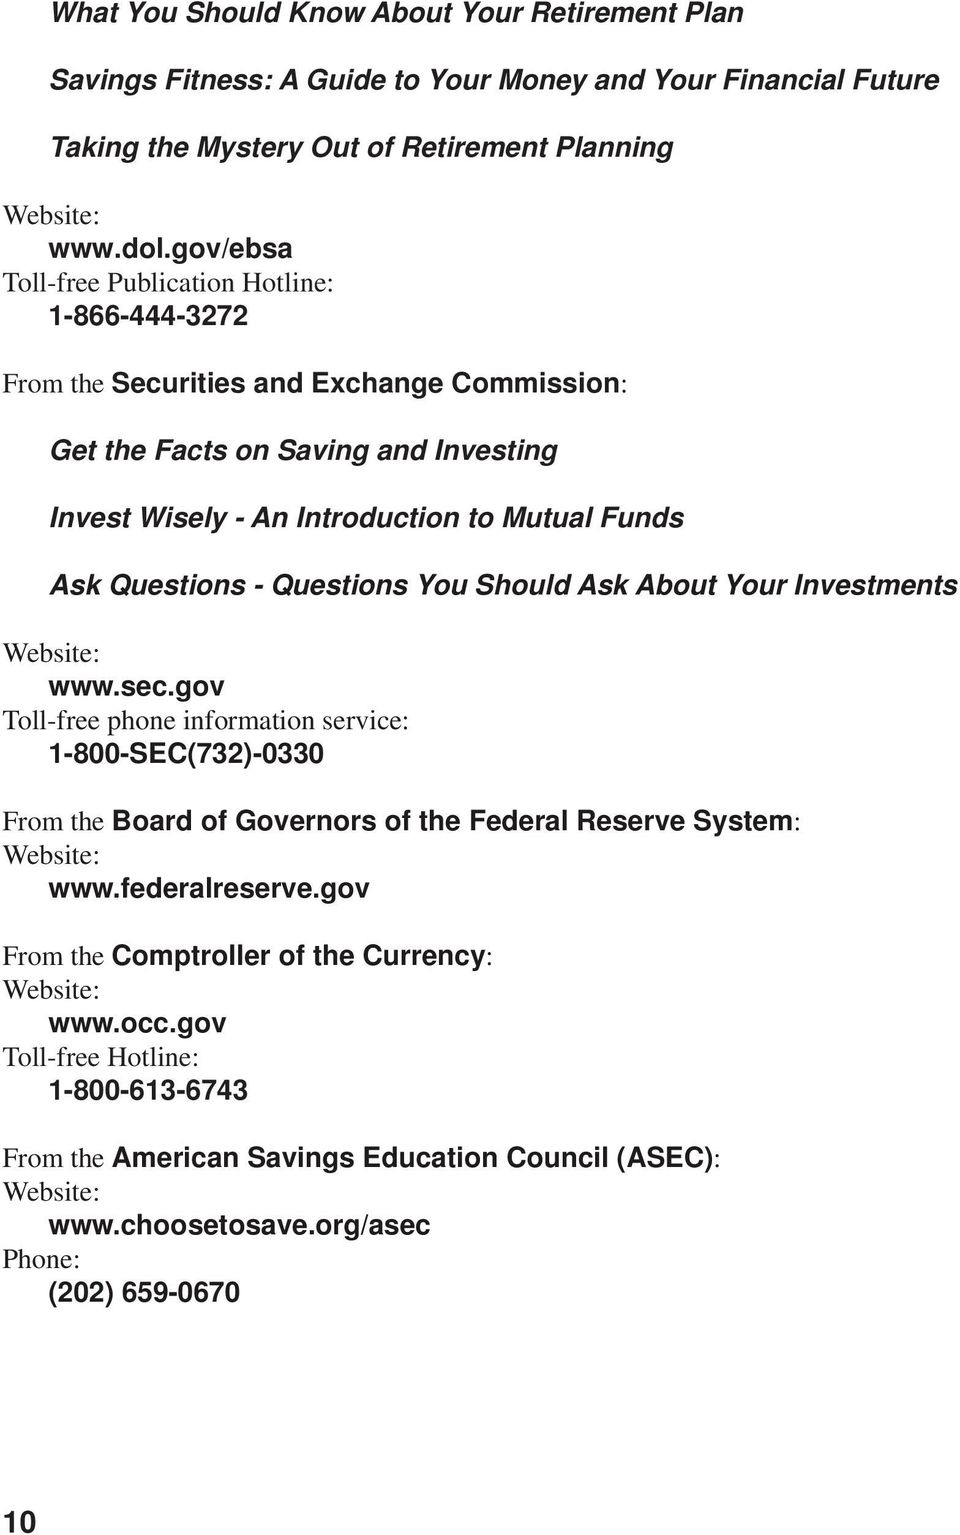 - Questions You Should Ask About Your Investments Website: www.sec.gov Toll-free phone information service: 1-800-SEC(732)-0330 From the Board of Governors of the Federal Reserve System: Website: www.